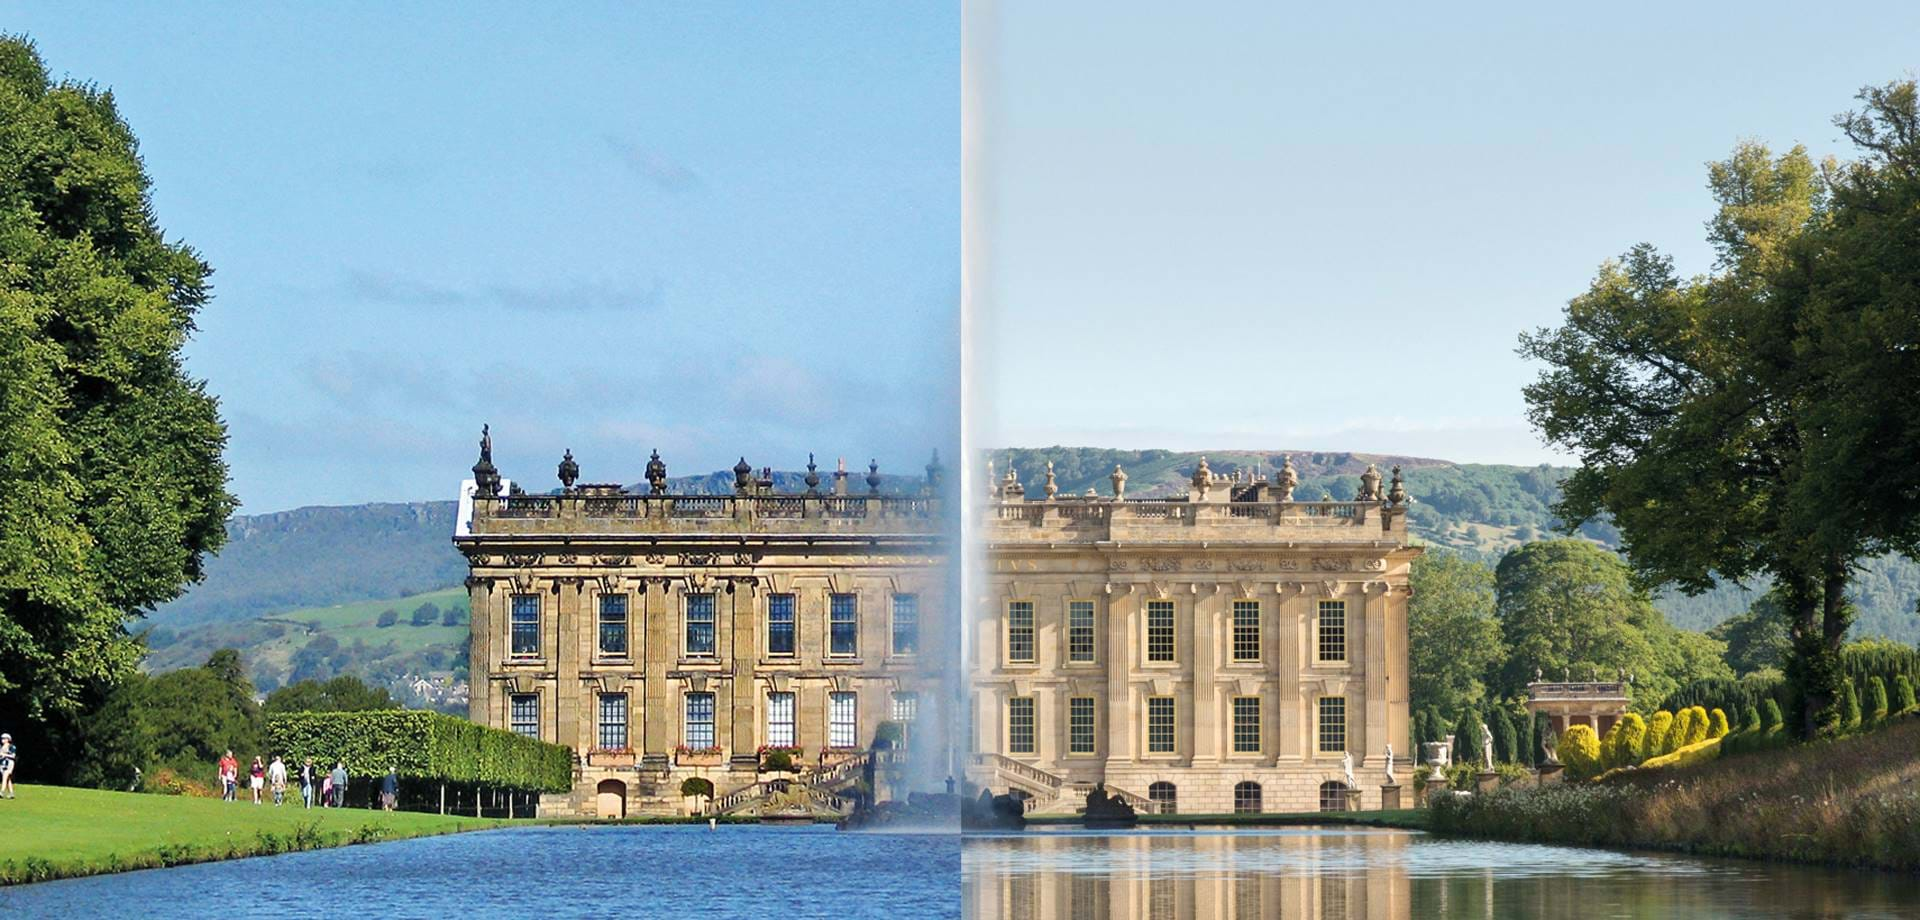 Chatsworth sparkles following biggest restoration for 200 years